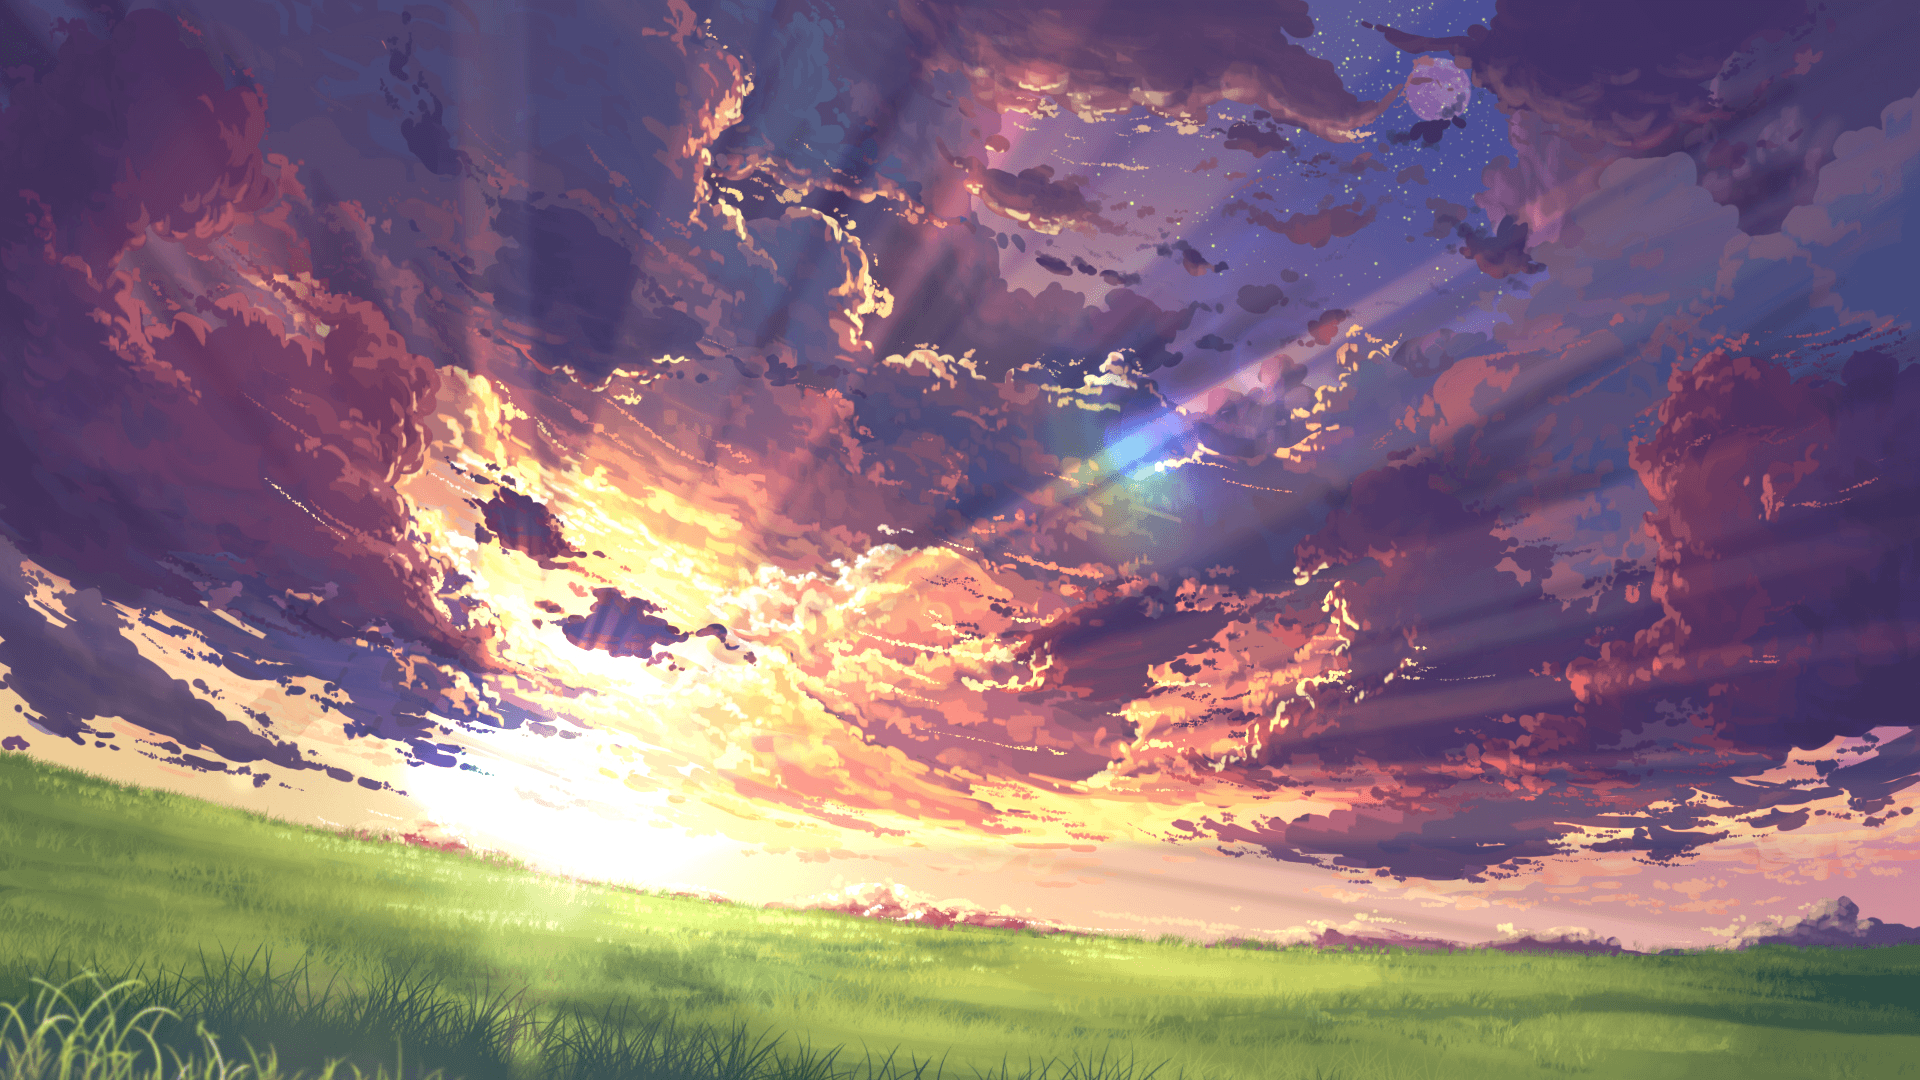 Cute Anime Backgrounds Posted By Christopher Anderson